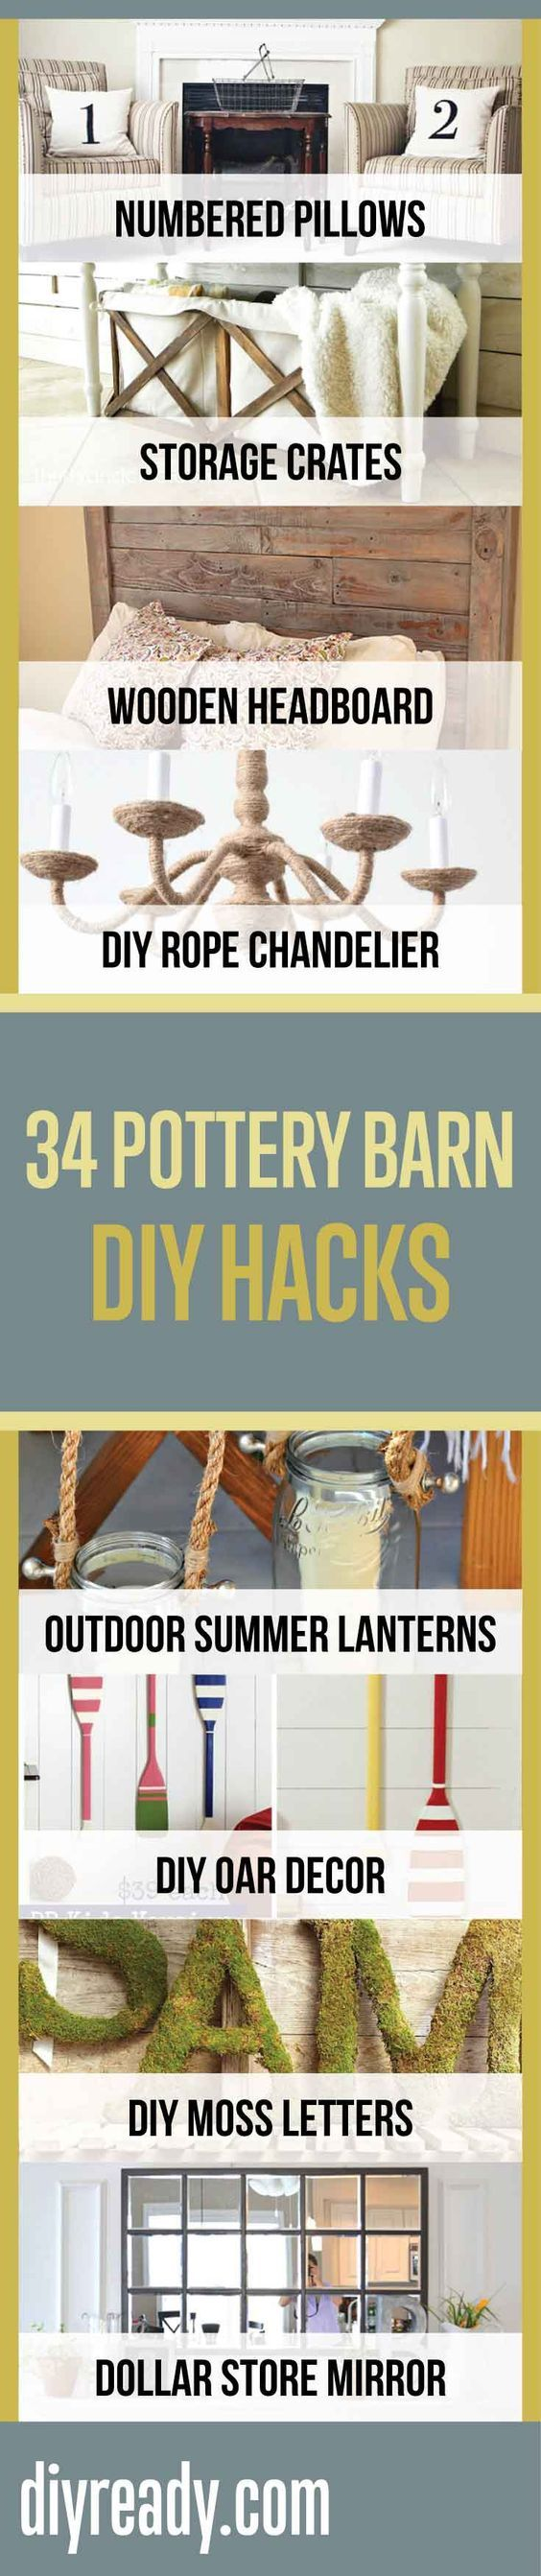 34 Pottery Barn Hacks For Design On a Budget | DIY Projects and Crafts by DIY Projects at https://diyprojects.com/diy-projects-pottery-barn-hacks